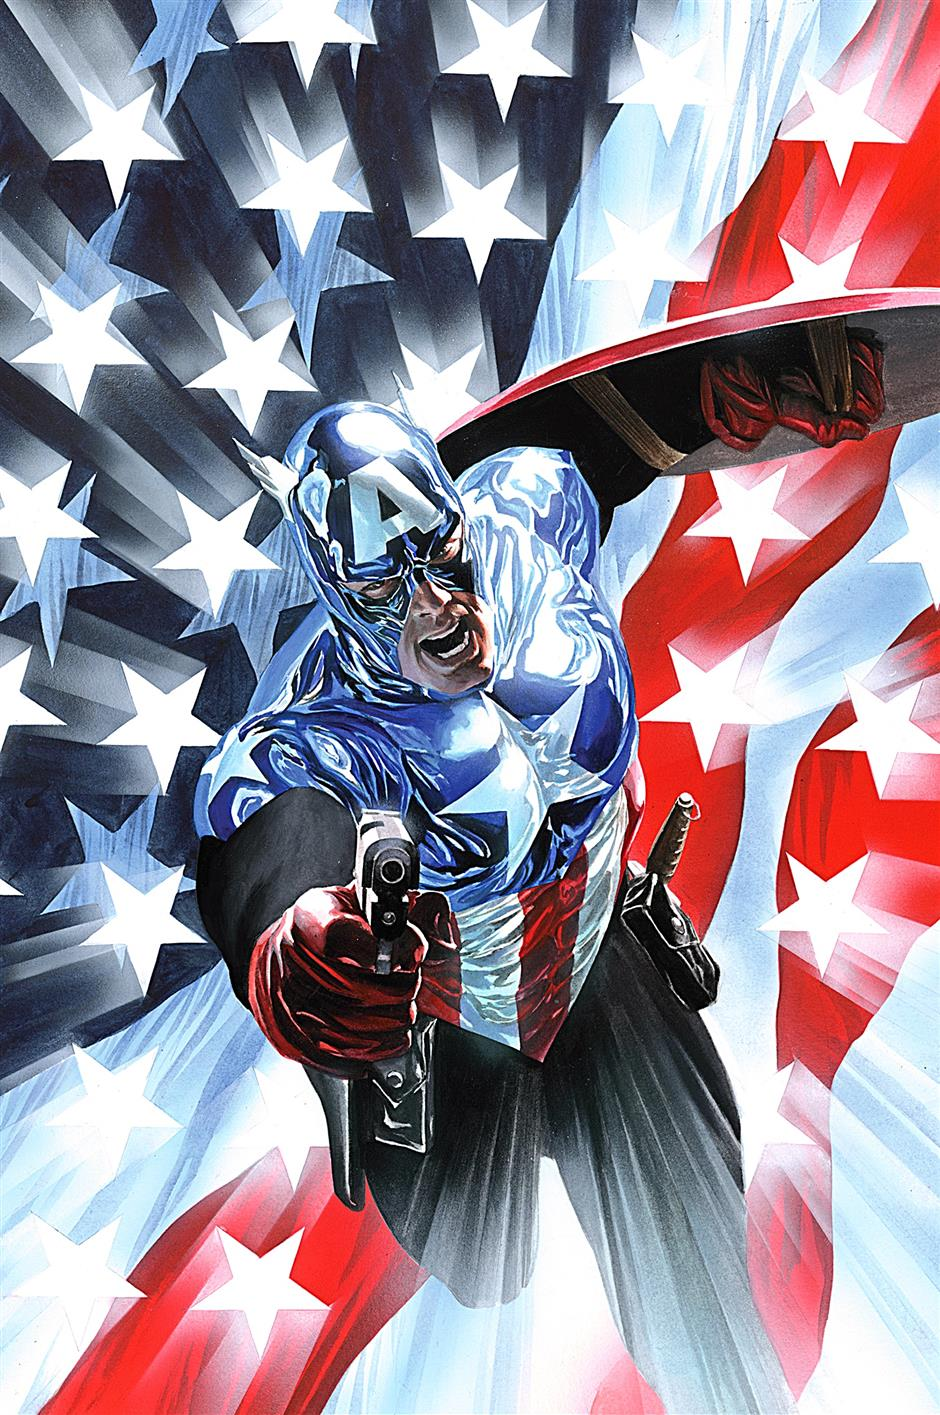 Cap pistol: After the 'death' of Steve Rogers, Bucky Barnes took up the mantle of Captain America, and started packing a gun.